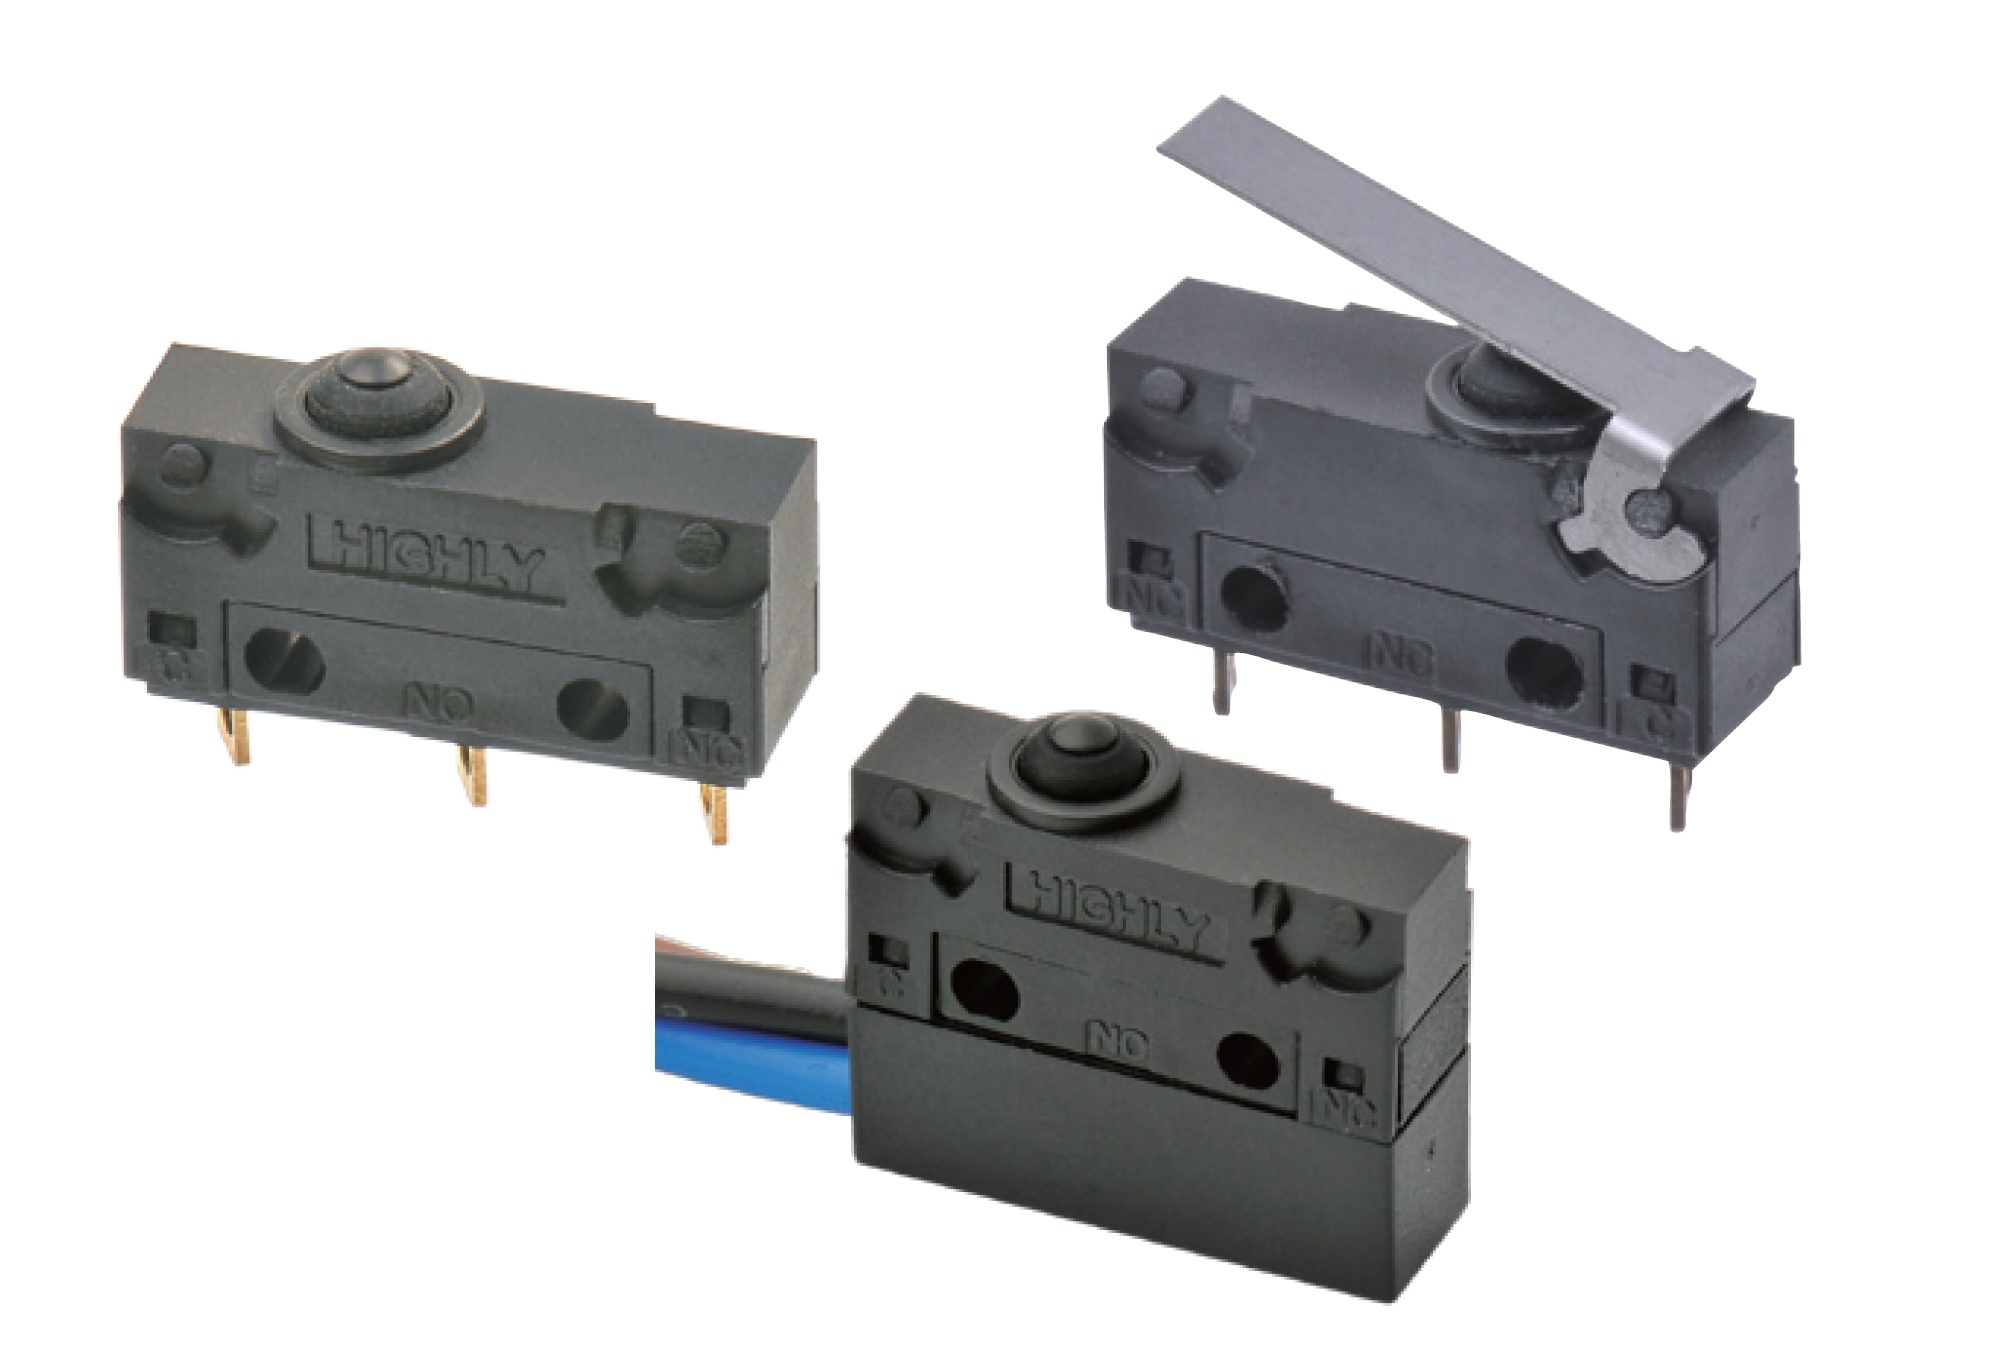 Sr Series Micro Switch Ip 67 Switches Highly Electric Co Microswitch